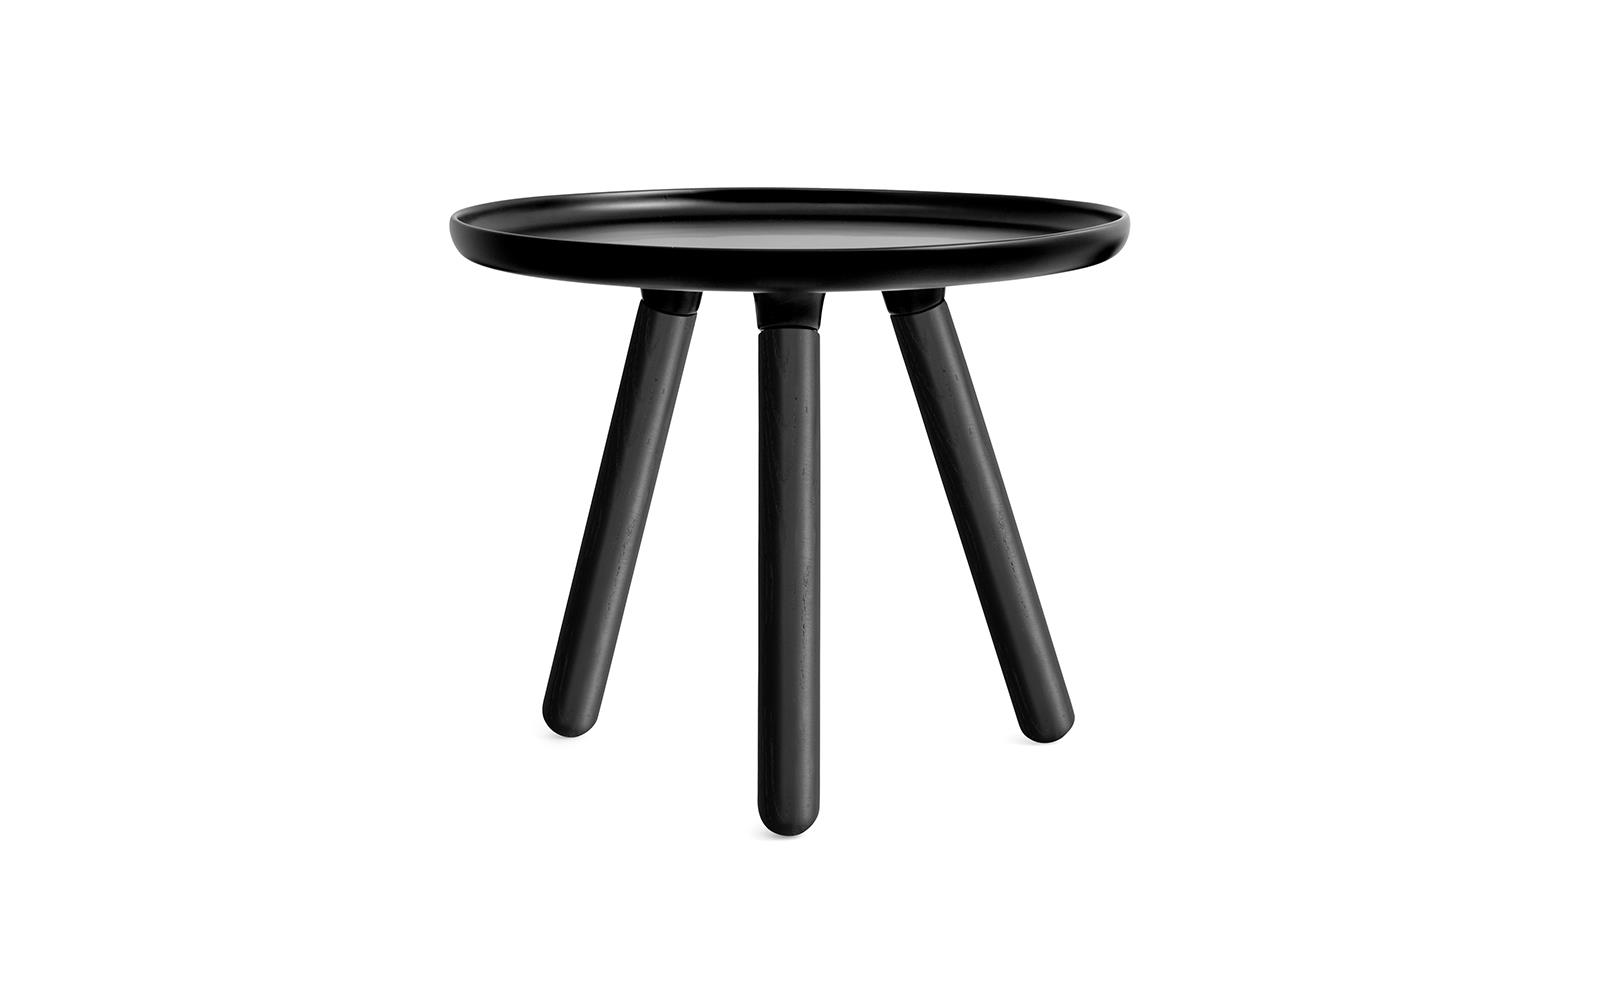 A Minimalistic Coffee Table In Black With